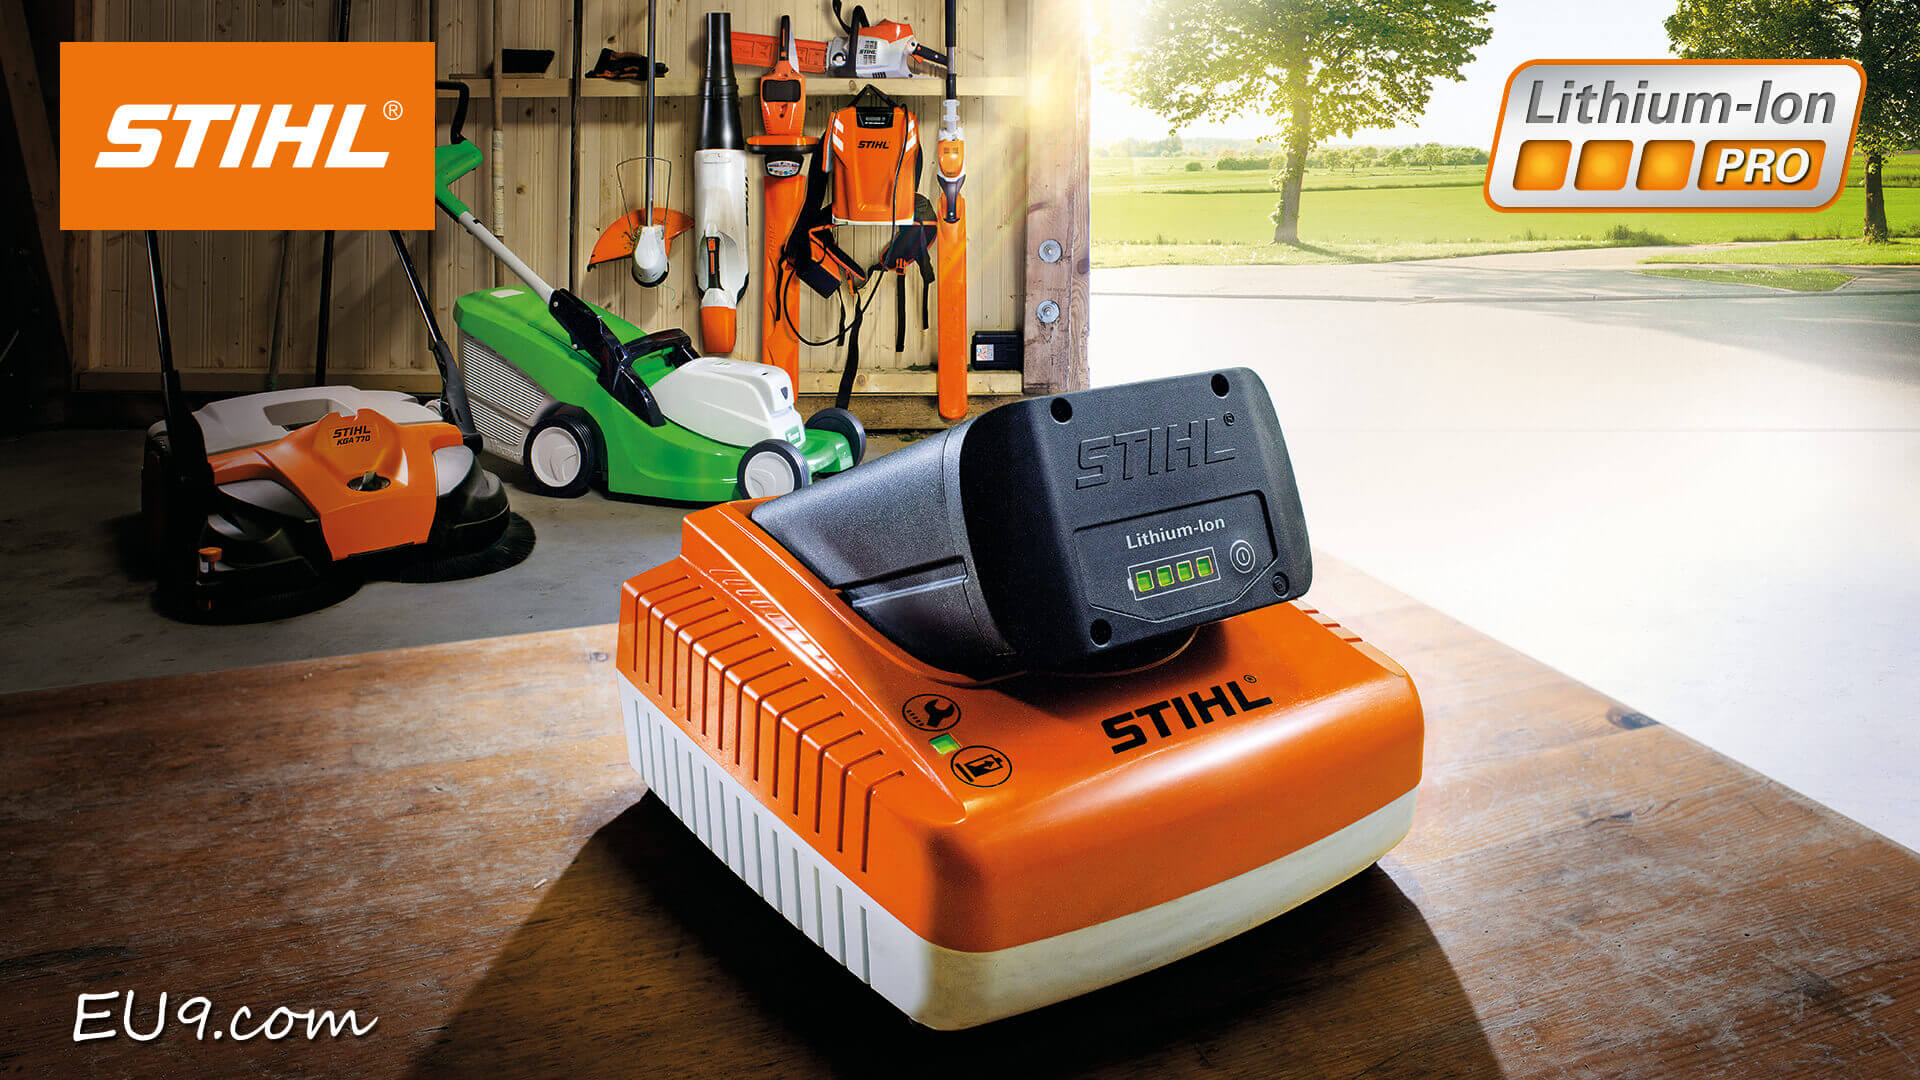 stihl ap 200 lithium ion pro akku. Black Bedroom Furniture Sets. Home Design Ideas